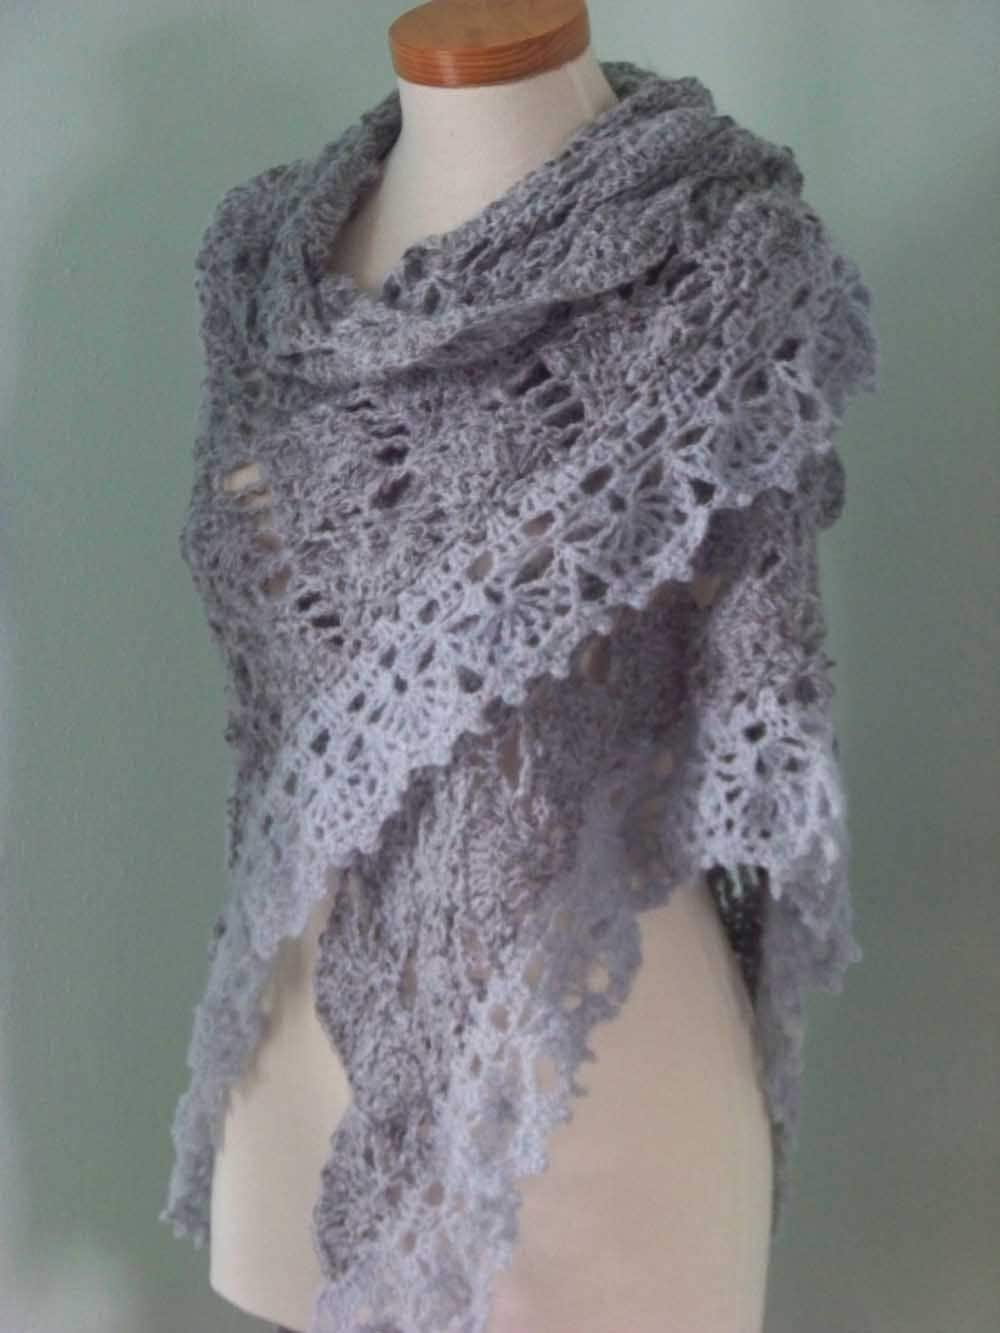 Crocheting Shawls : CROCHET FREE LACY PATTERN SHAWL - Crochet Club